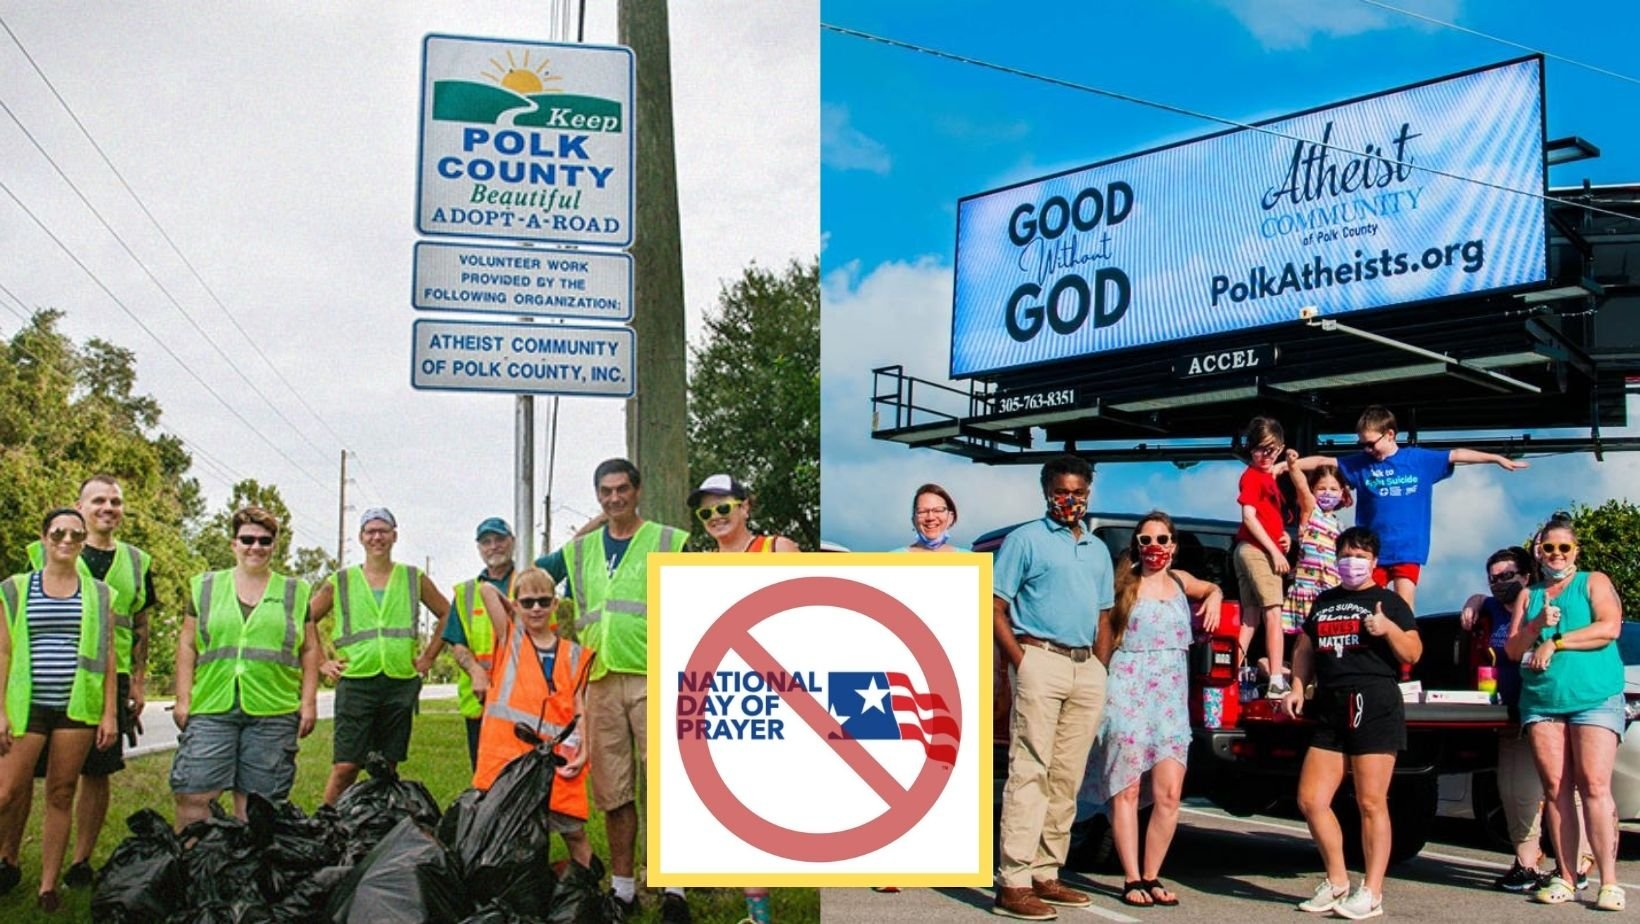 1 128.jpg?resize=1200,630 - Atheists Responded To National Day of Prayer With Action to Clean Up Litter & Feed The Hungry